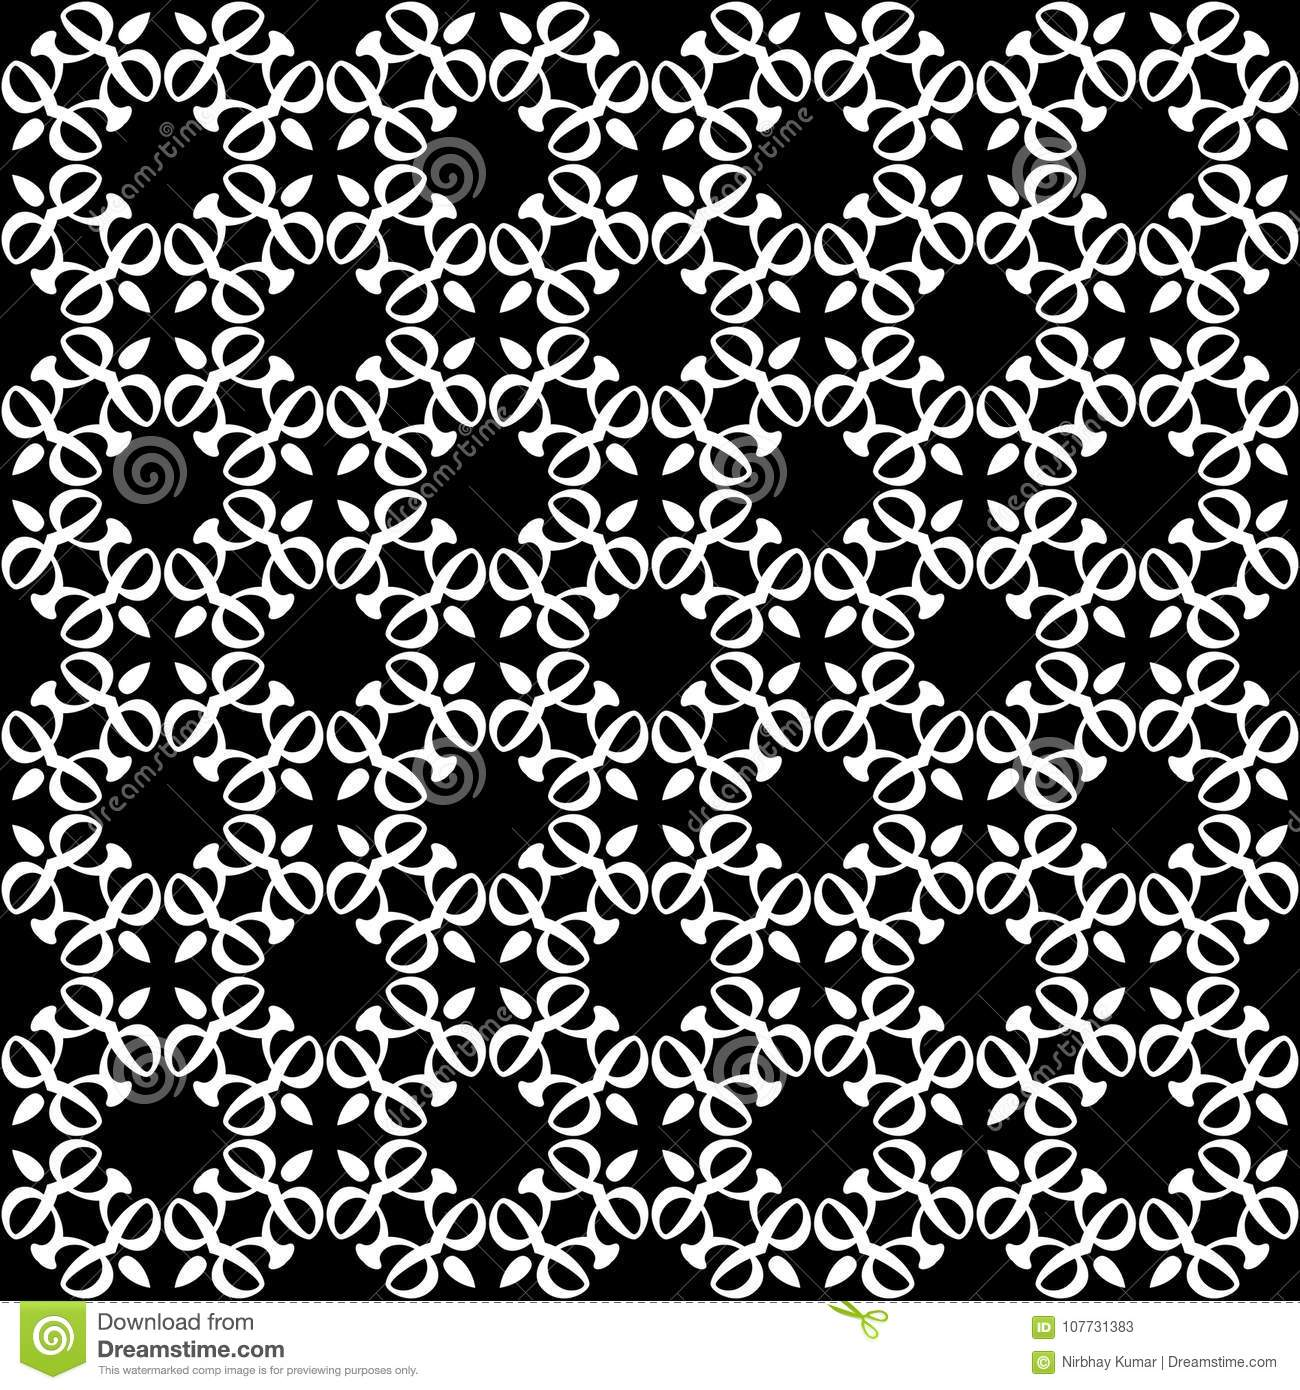 Simple Wallpaper Home Screen Black And White - pattern-website-background-wallpaper-screen-sever-book-cover-printing-laser-cutting-designs-vector-black-white-107731383  Pic_757279.jpg